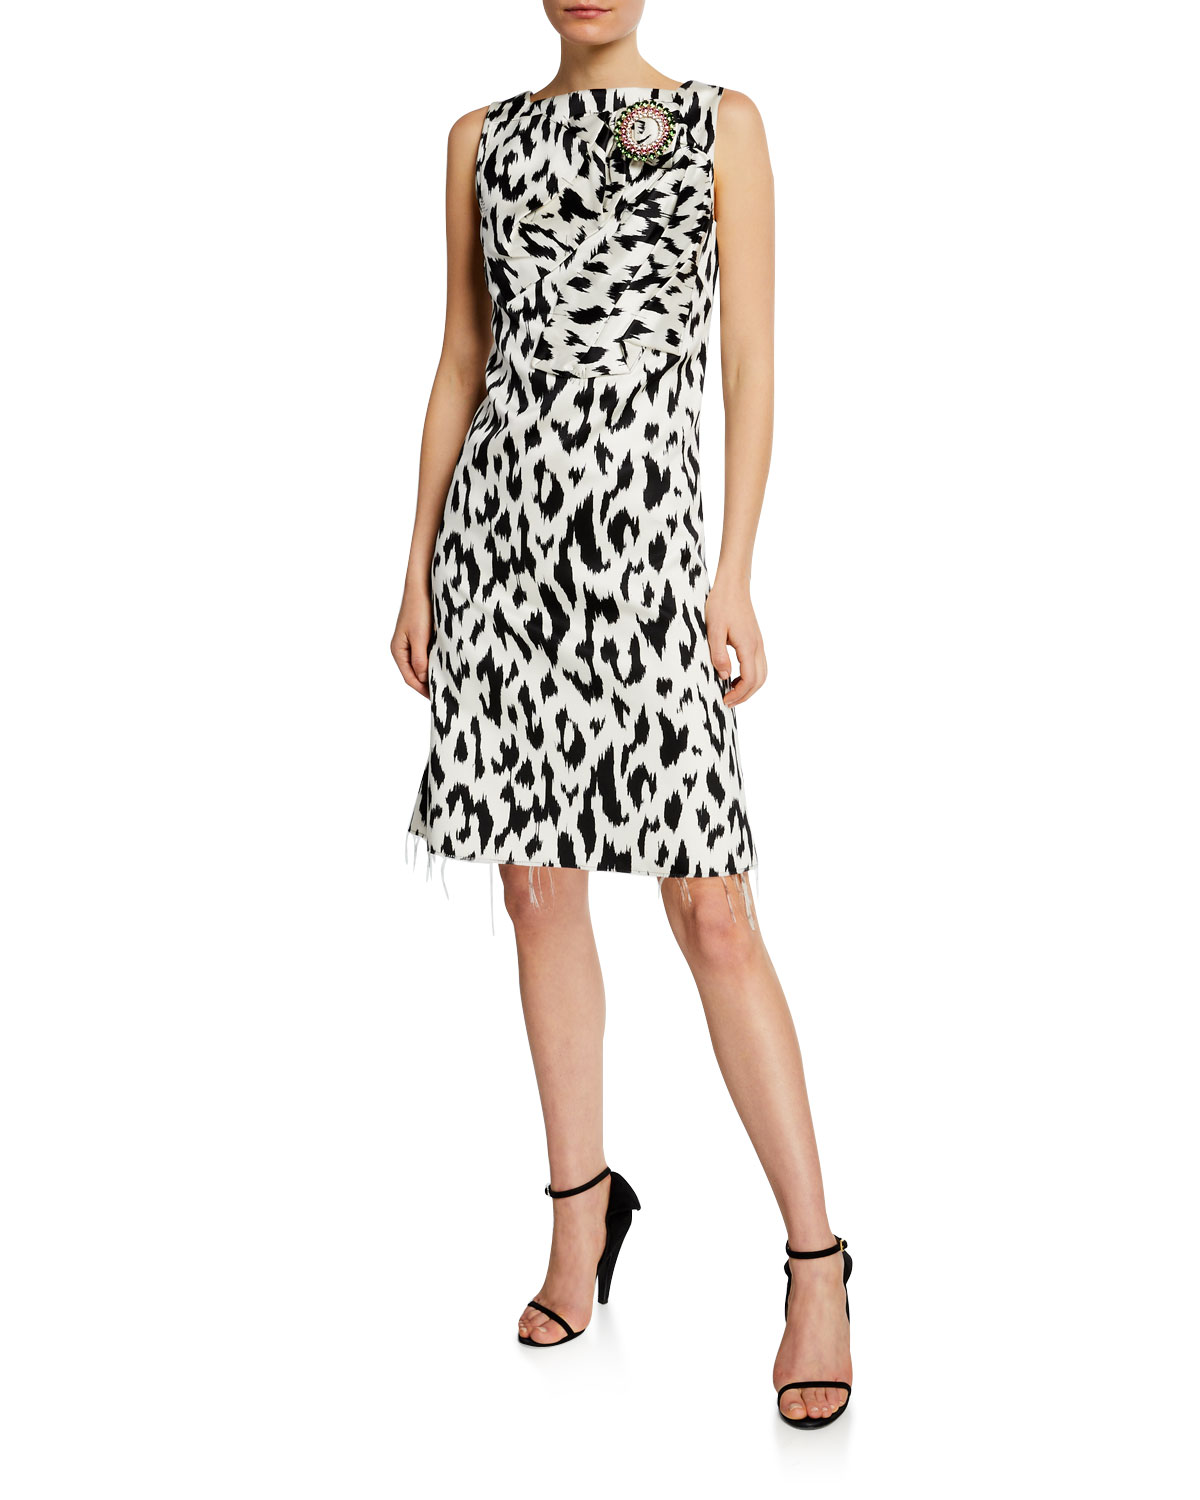 c73f439c41e CALVIN KLEIN 205W39NYC Leopard-Print Dress with Crushed Bow   Crystal Pin